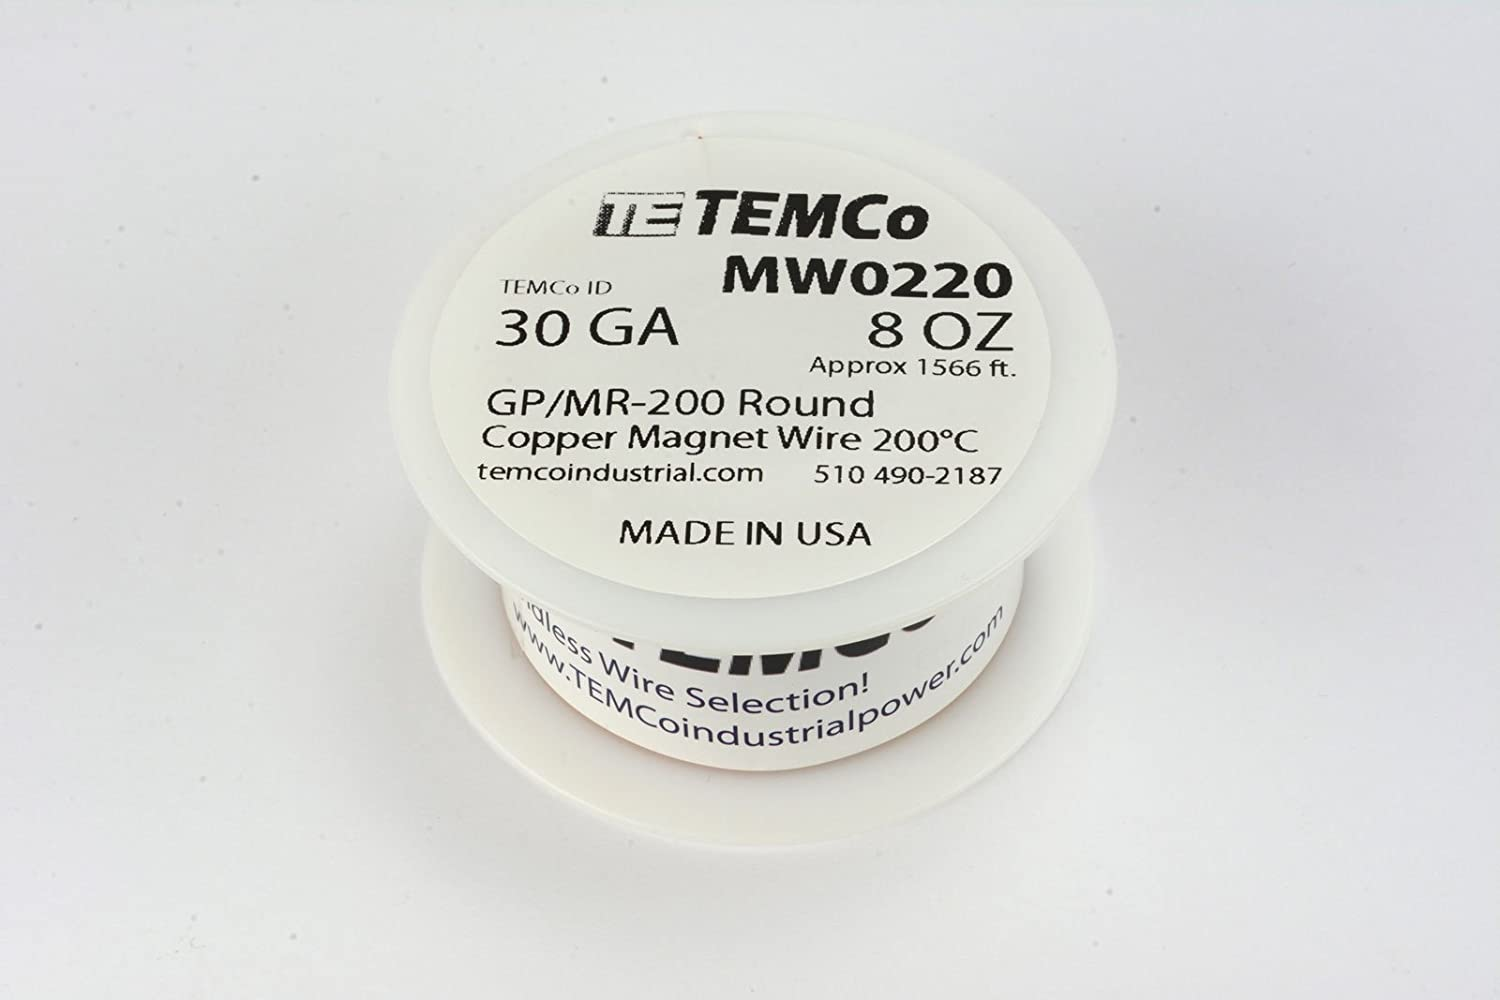 Amazon.com: TEMCo 30 AWG Copper Magnet Wire - 8 oz 1566 ft 200°C ...